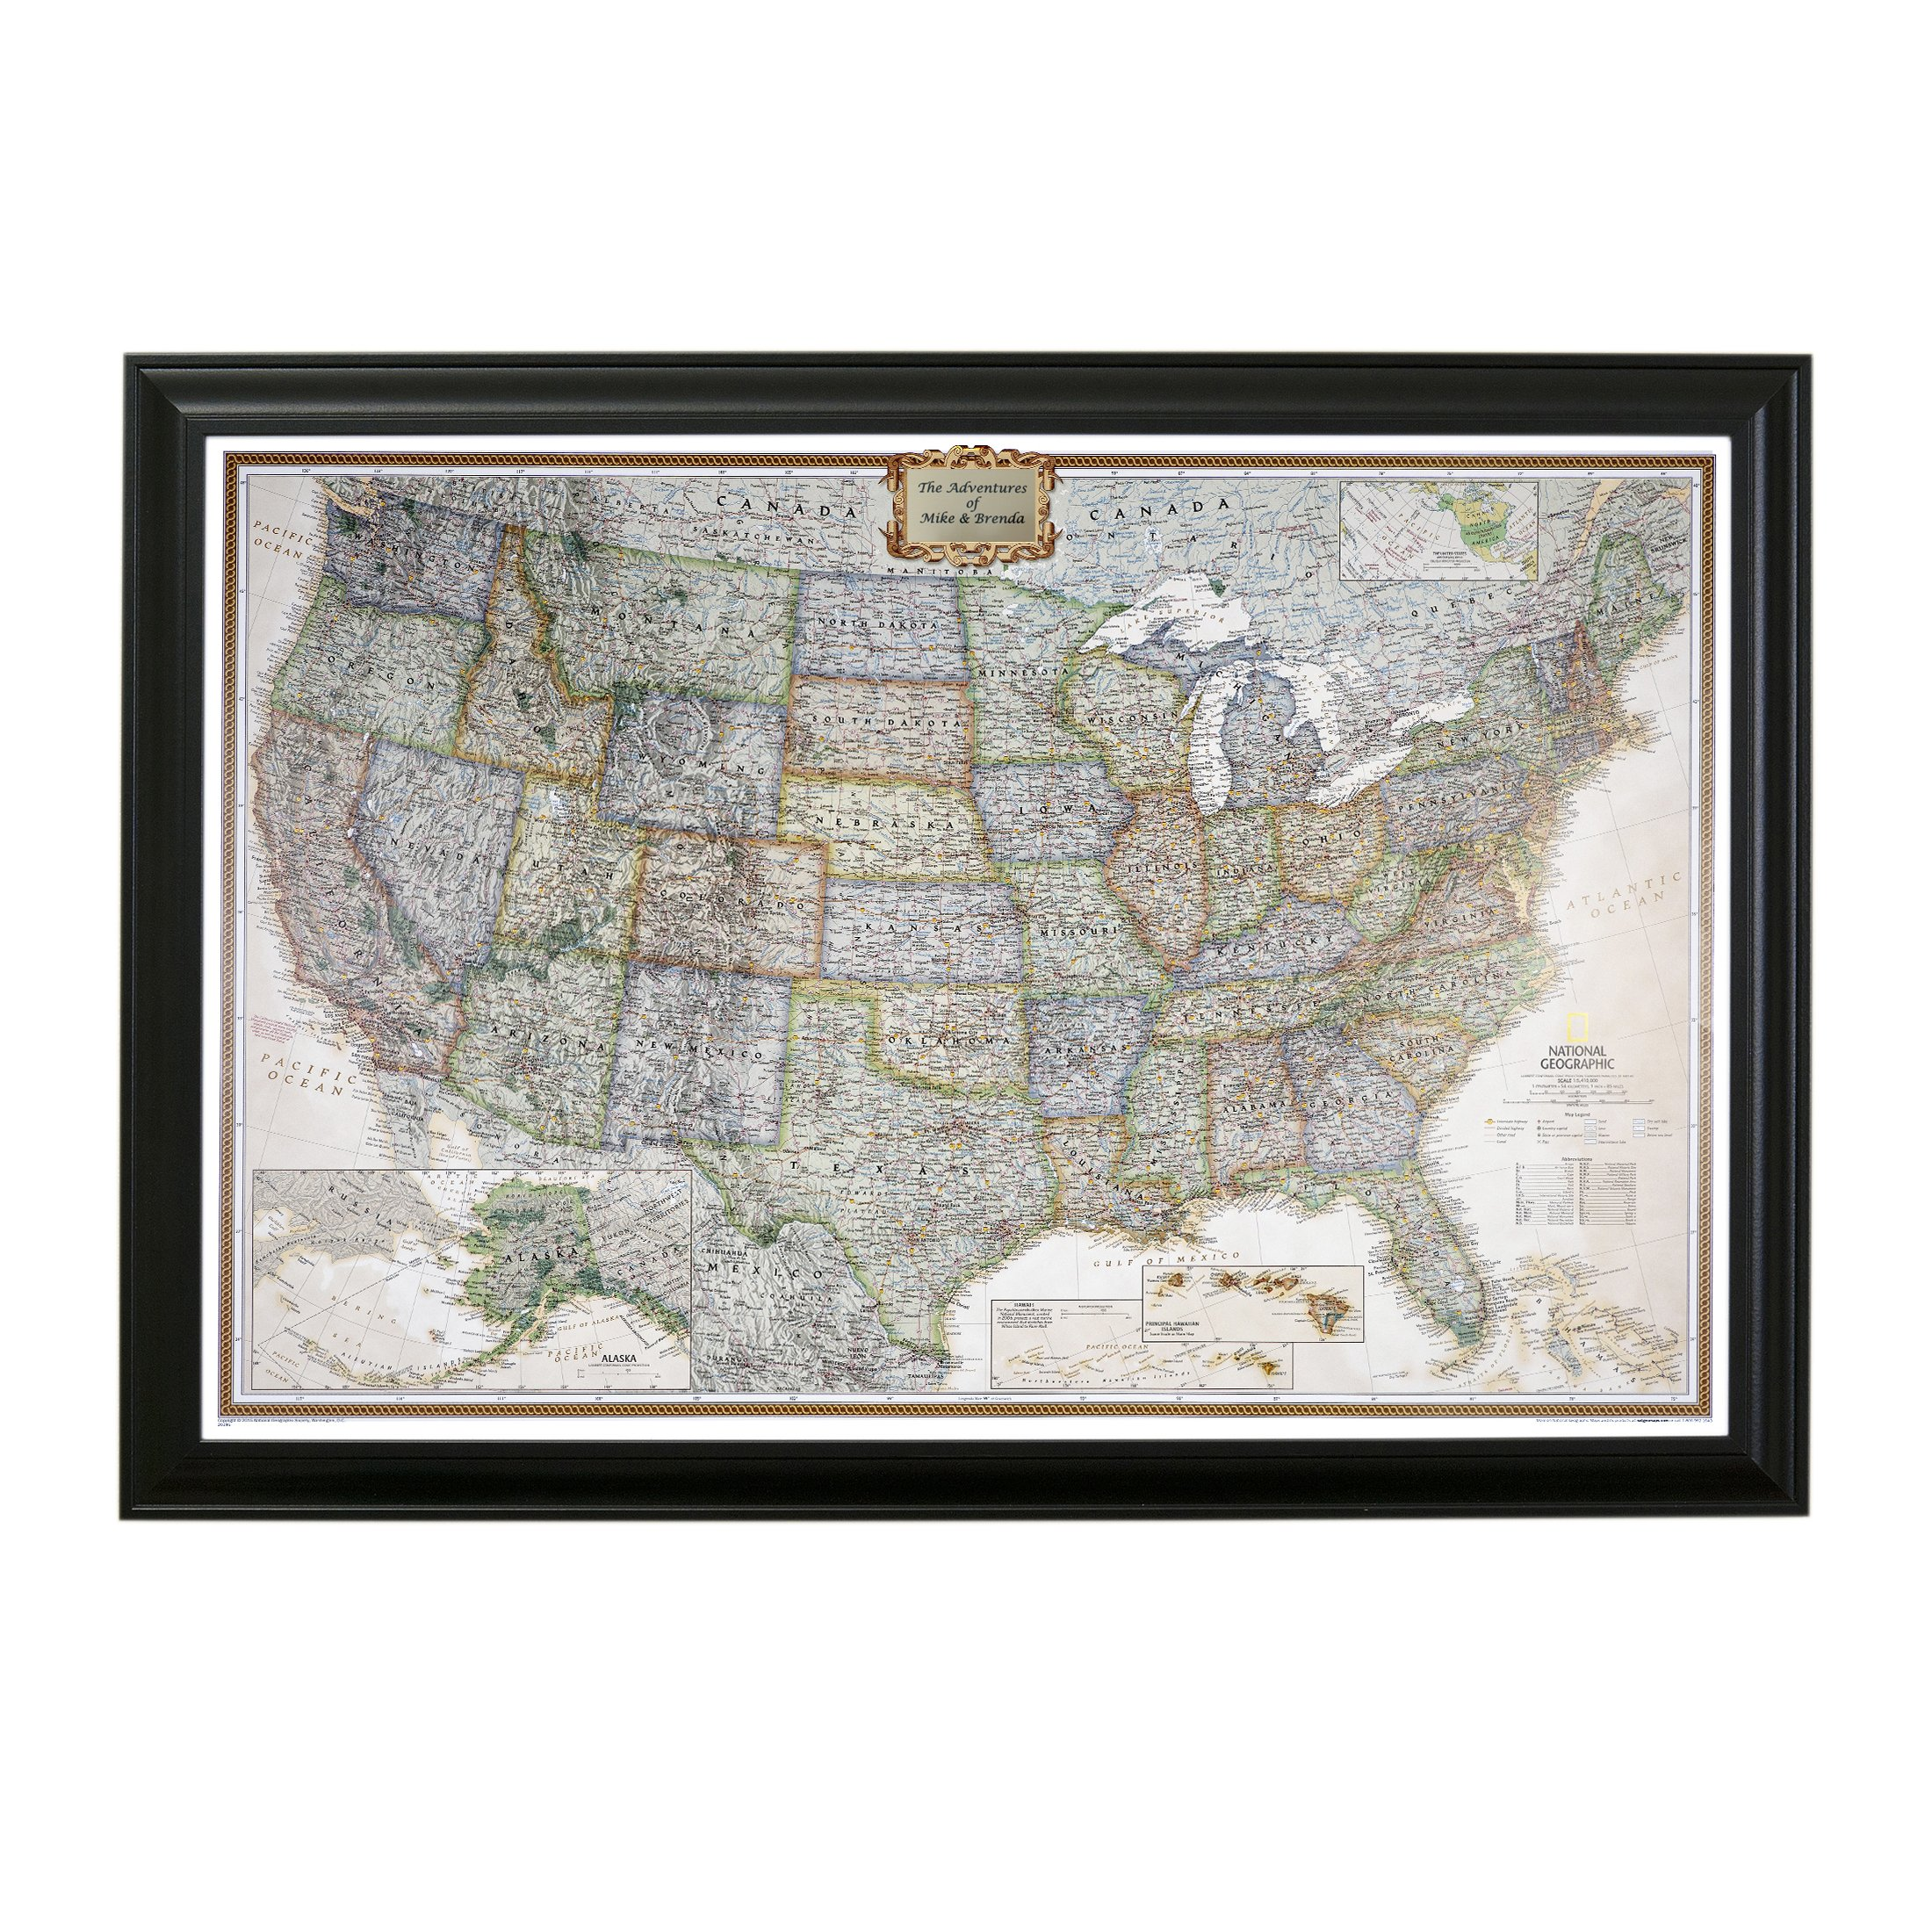 Personalized Executive US Push Pin Travel Map with Black Frame and Pins 24 x 36 by Push Pin Travel Maps (Image #1)